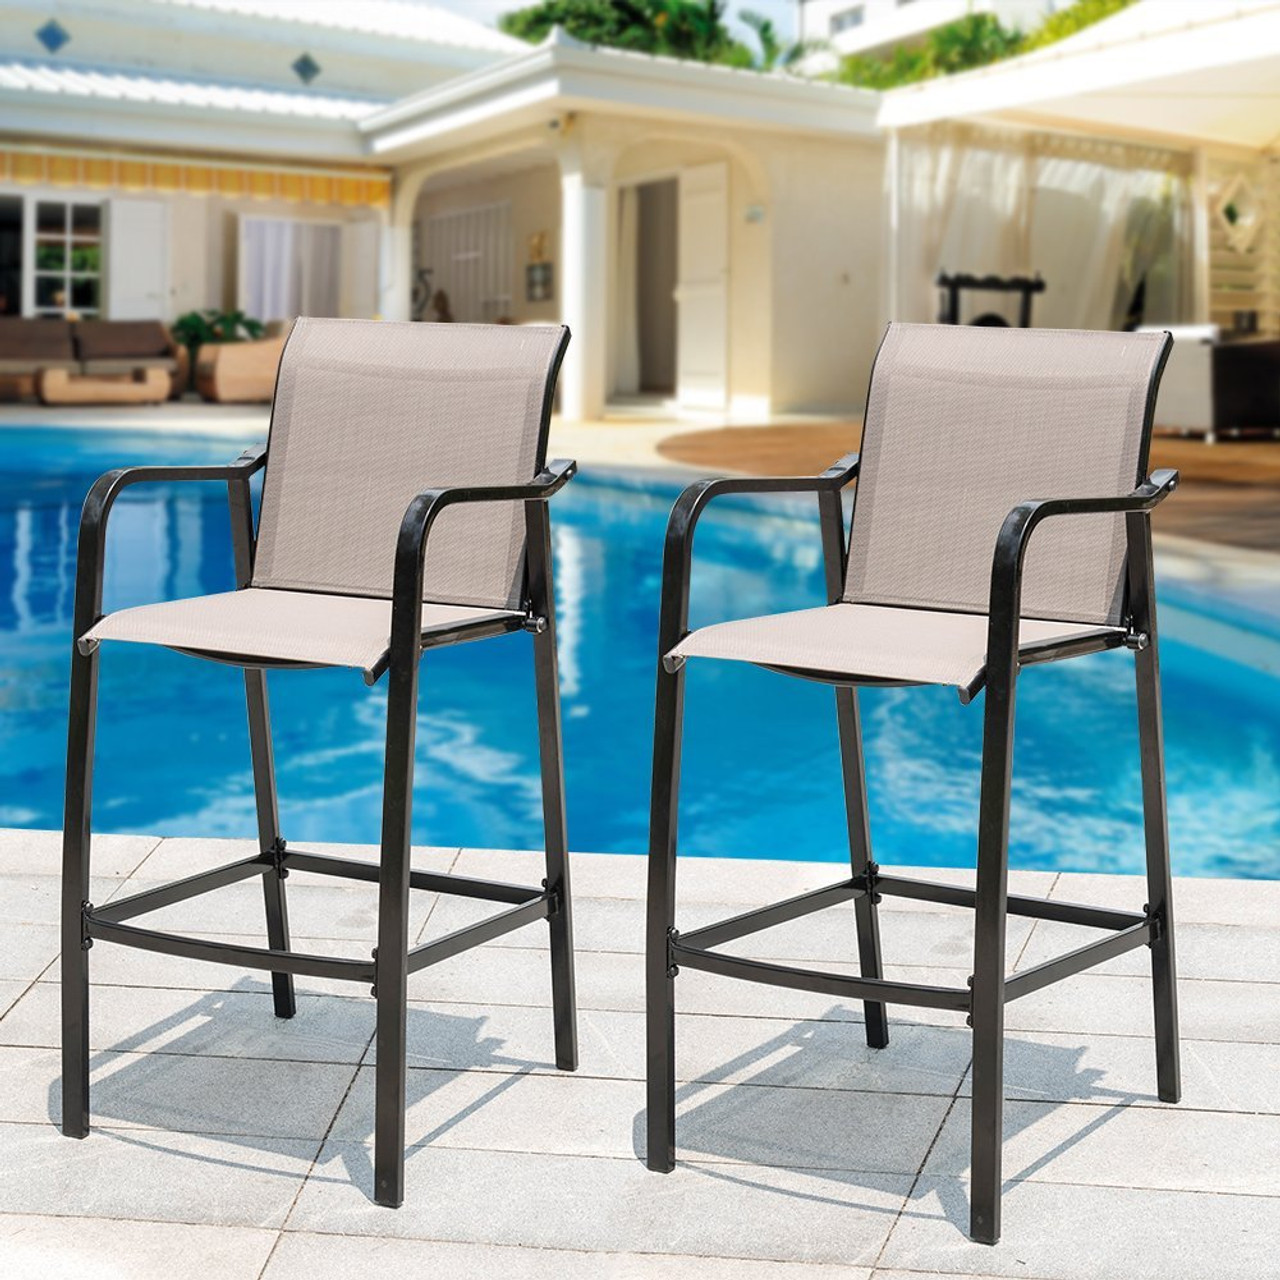 sundale outdoor counter height bar stool all weather patio furniture with quick dry textilene. Black Bedroom Furniture Sets. Home Design Ideas